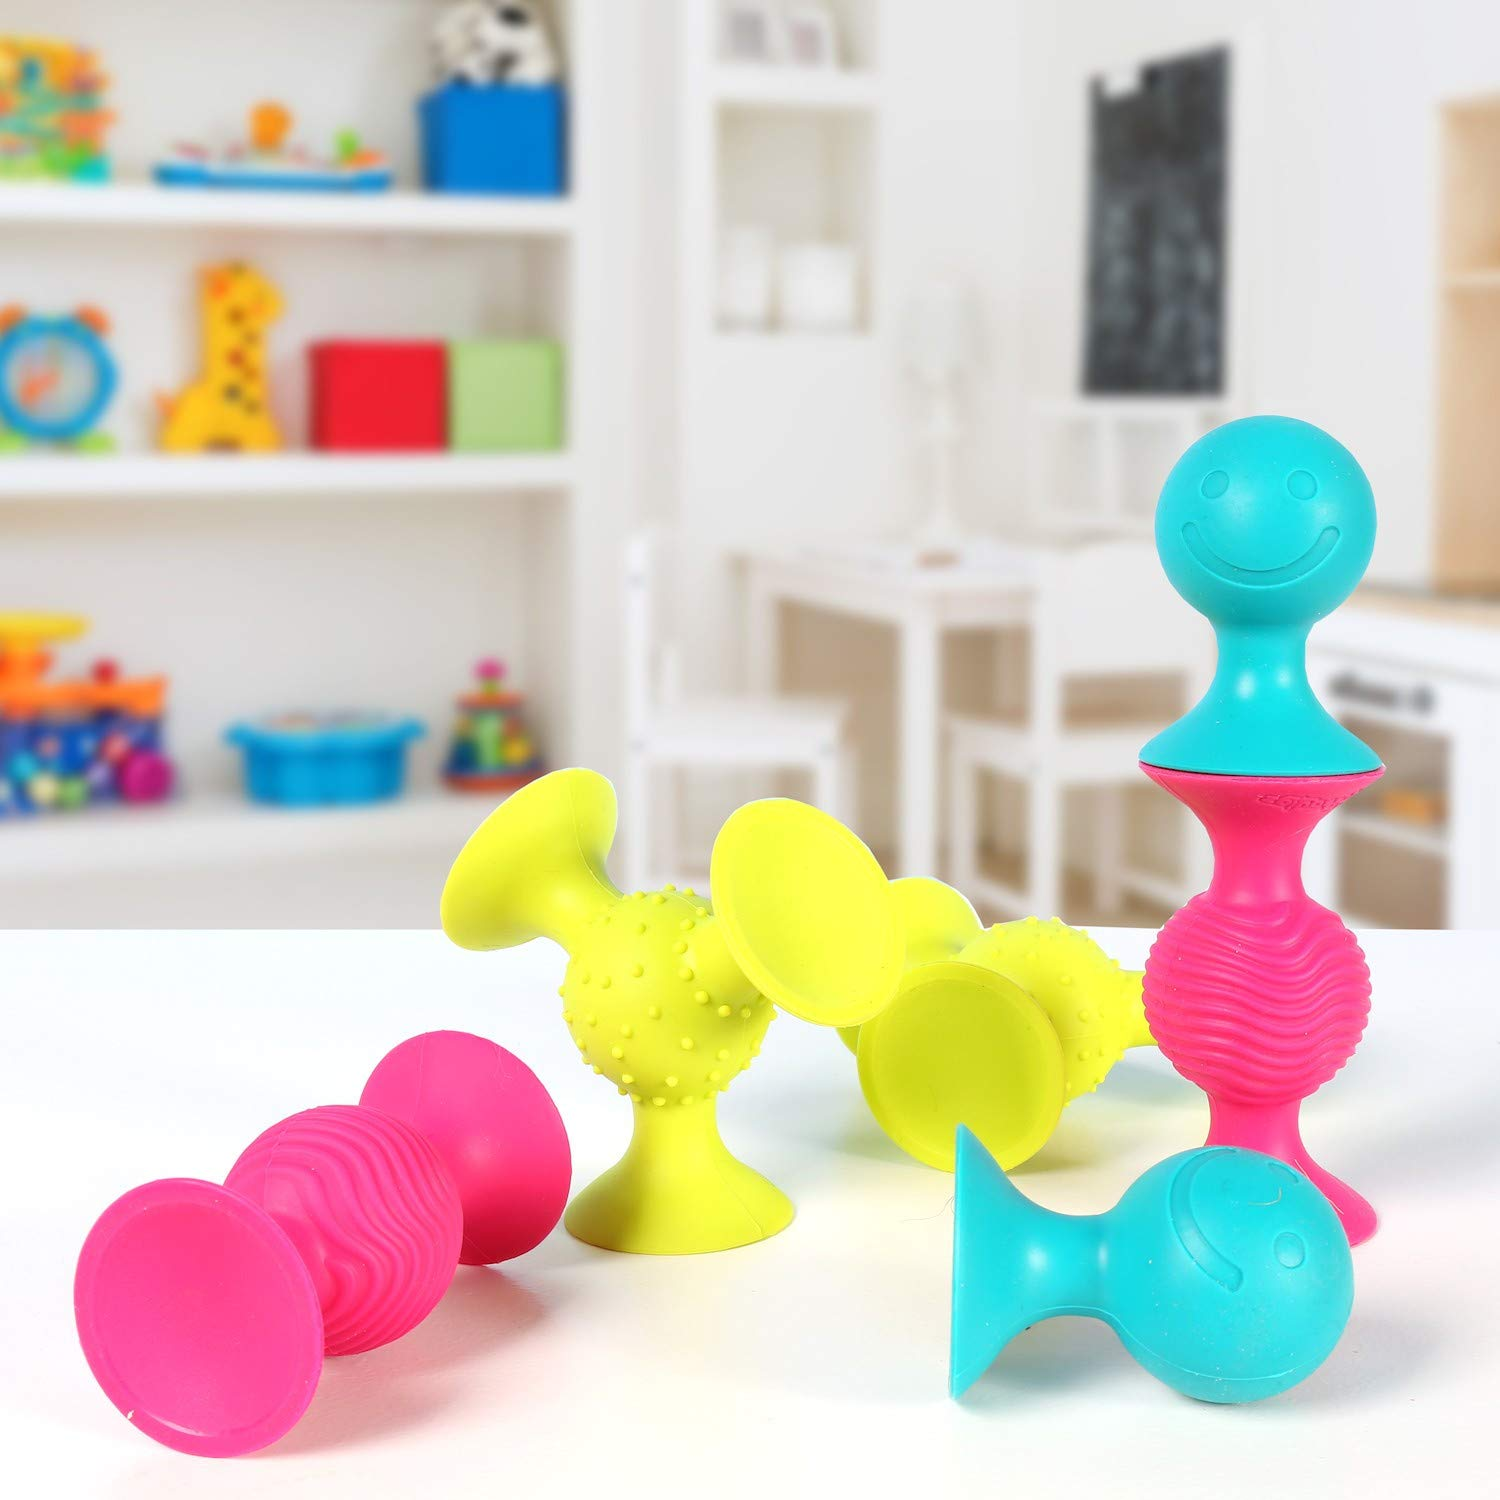 Fat Brain Toys PipSquigz 6 Piece Set with Storage Bag - Exclusive Rattle Suction Toy Building Set with Bonus Carrying Case - BPA-Free by Fat Brain Toys (Image #6)